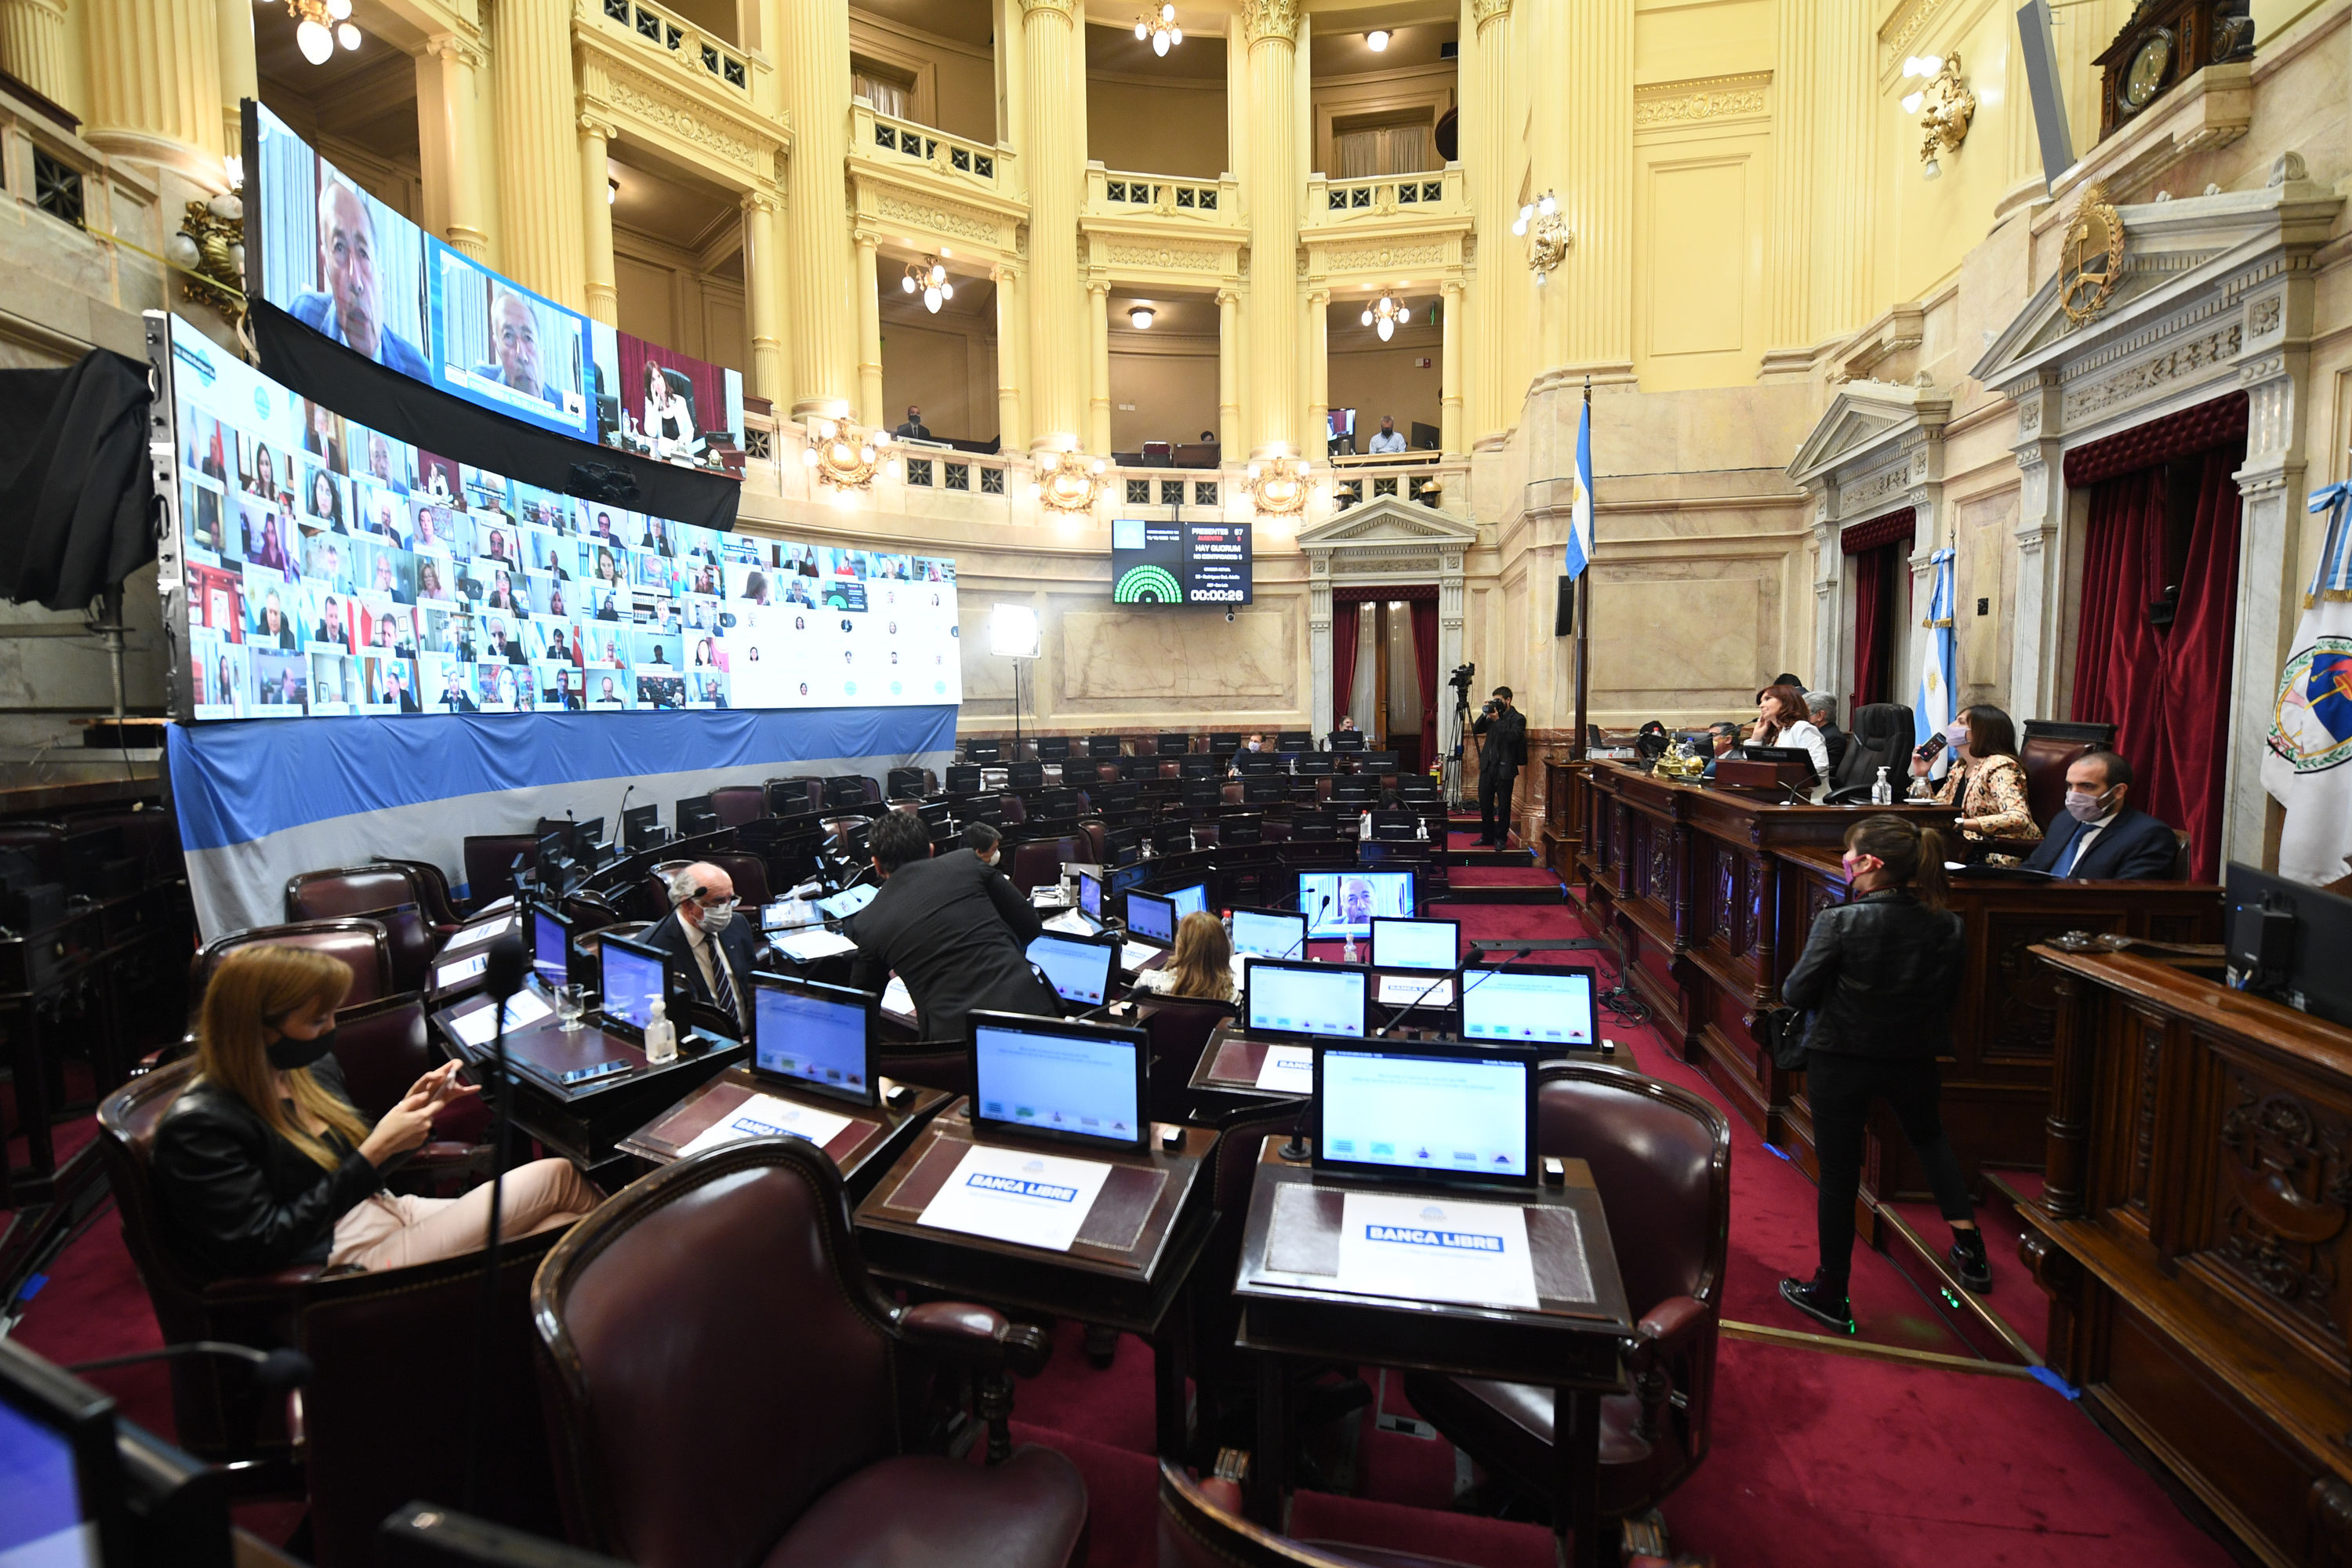 Sesión ordinaria remota del Honorable Senado de la